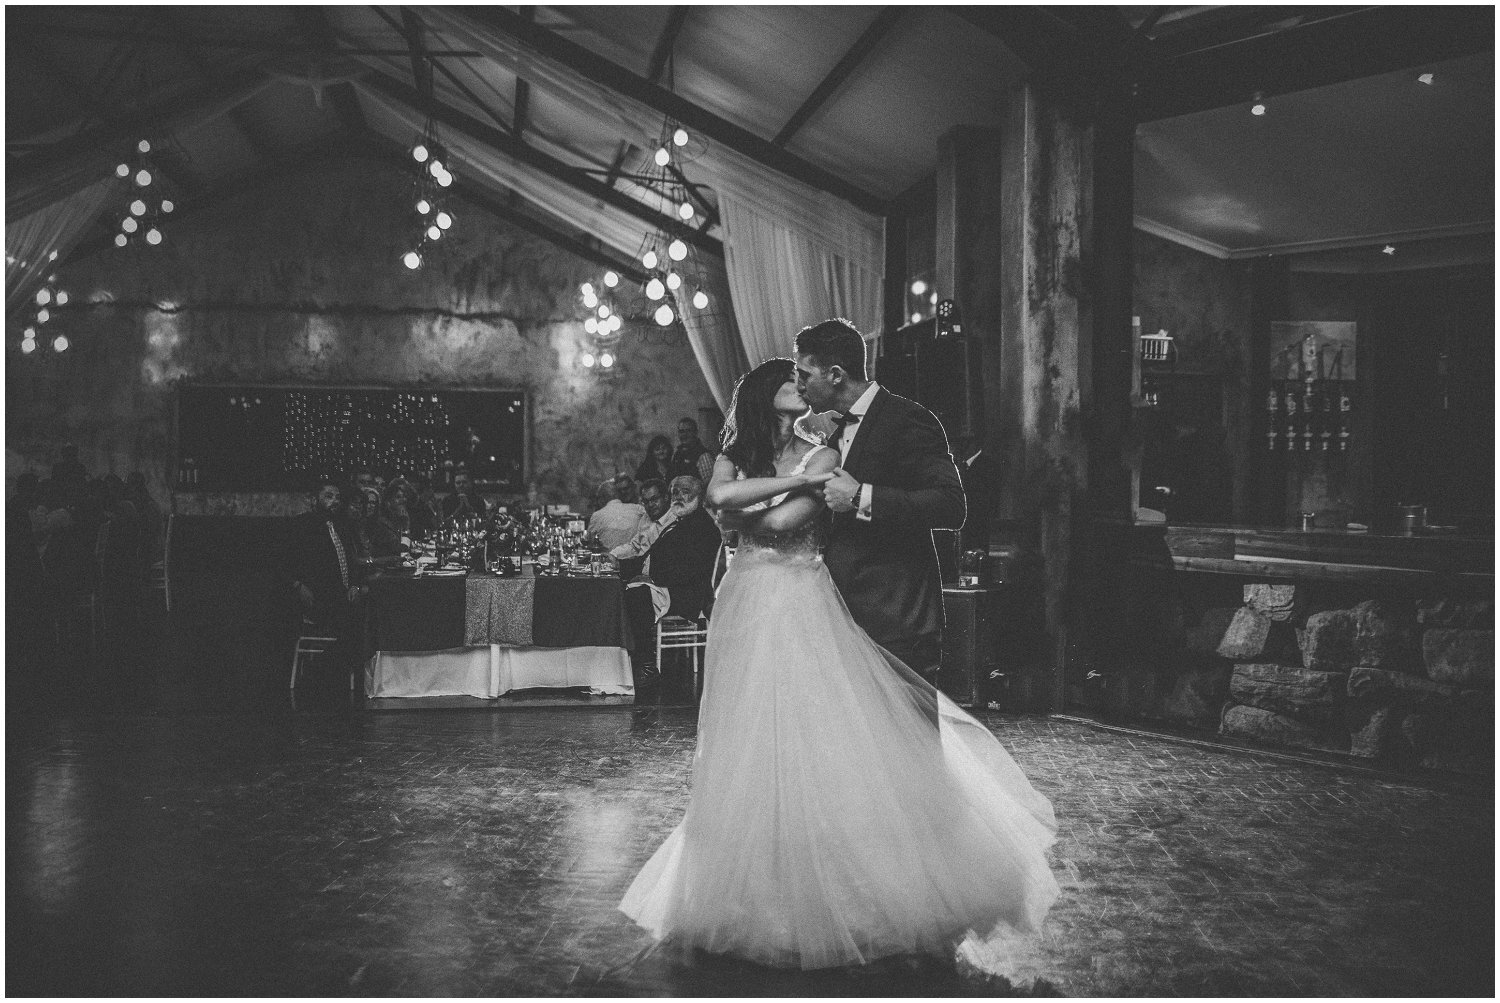 Top Wedding Photographer Cape Town South Africa Artistic Creative Documentary Wedding Photography Rue Kruger_1414.jpg